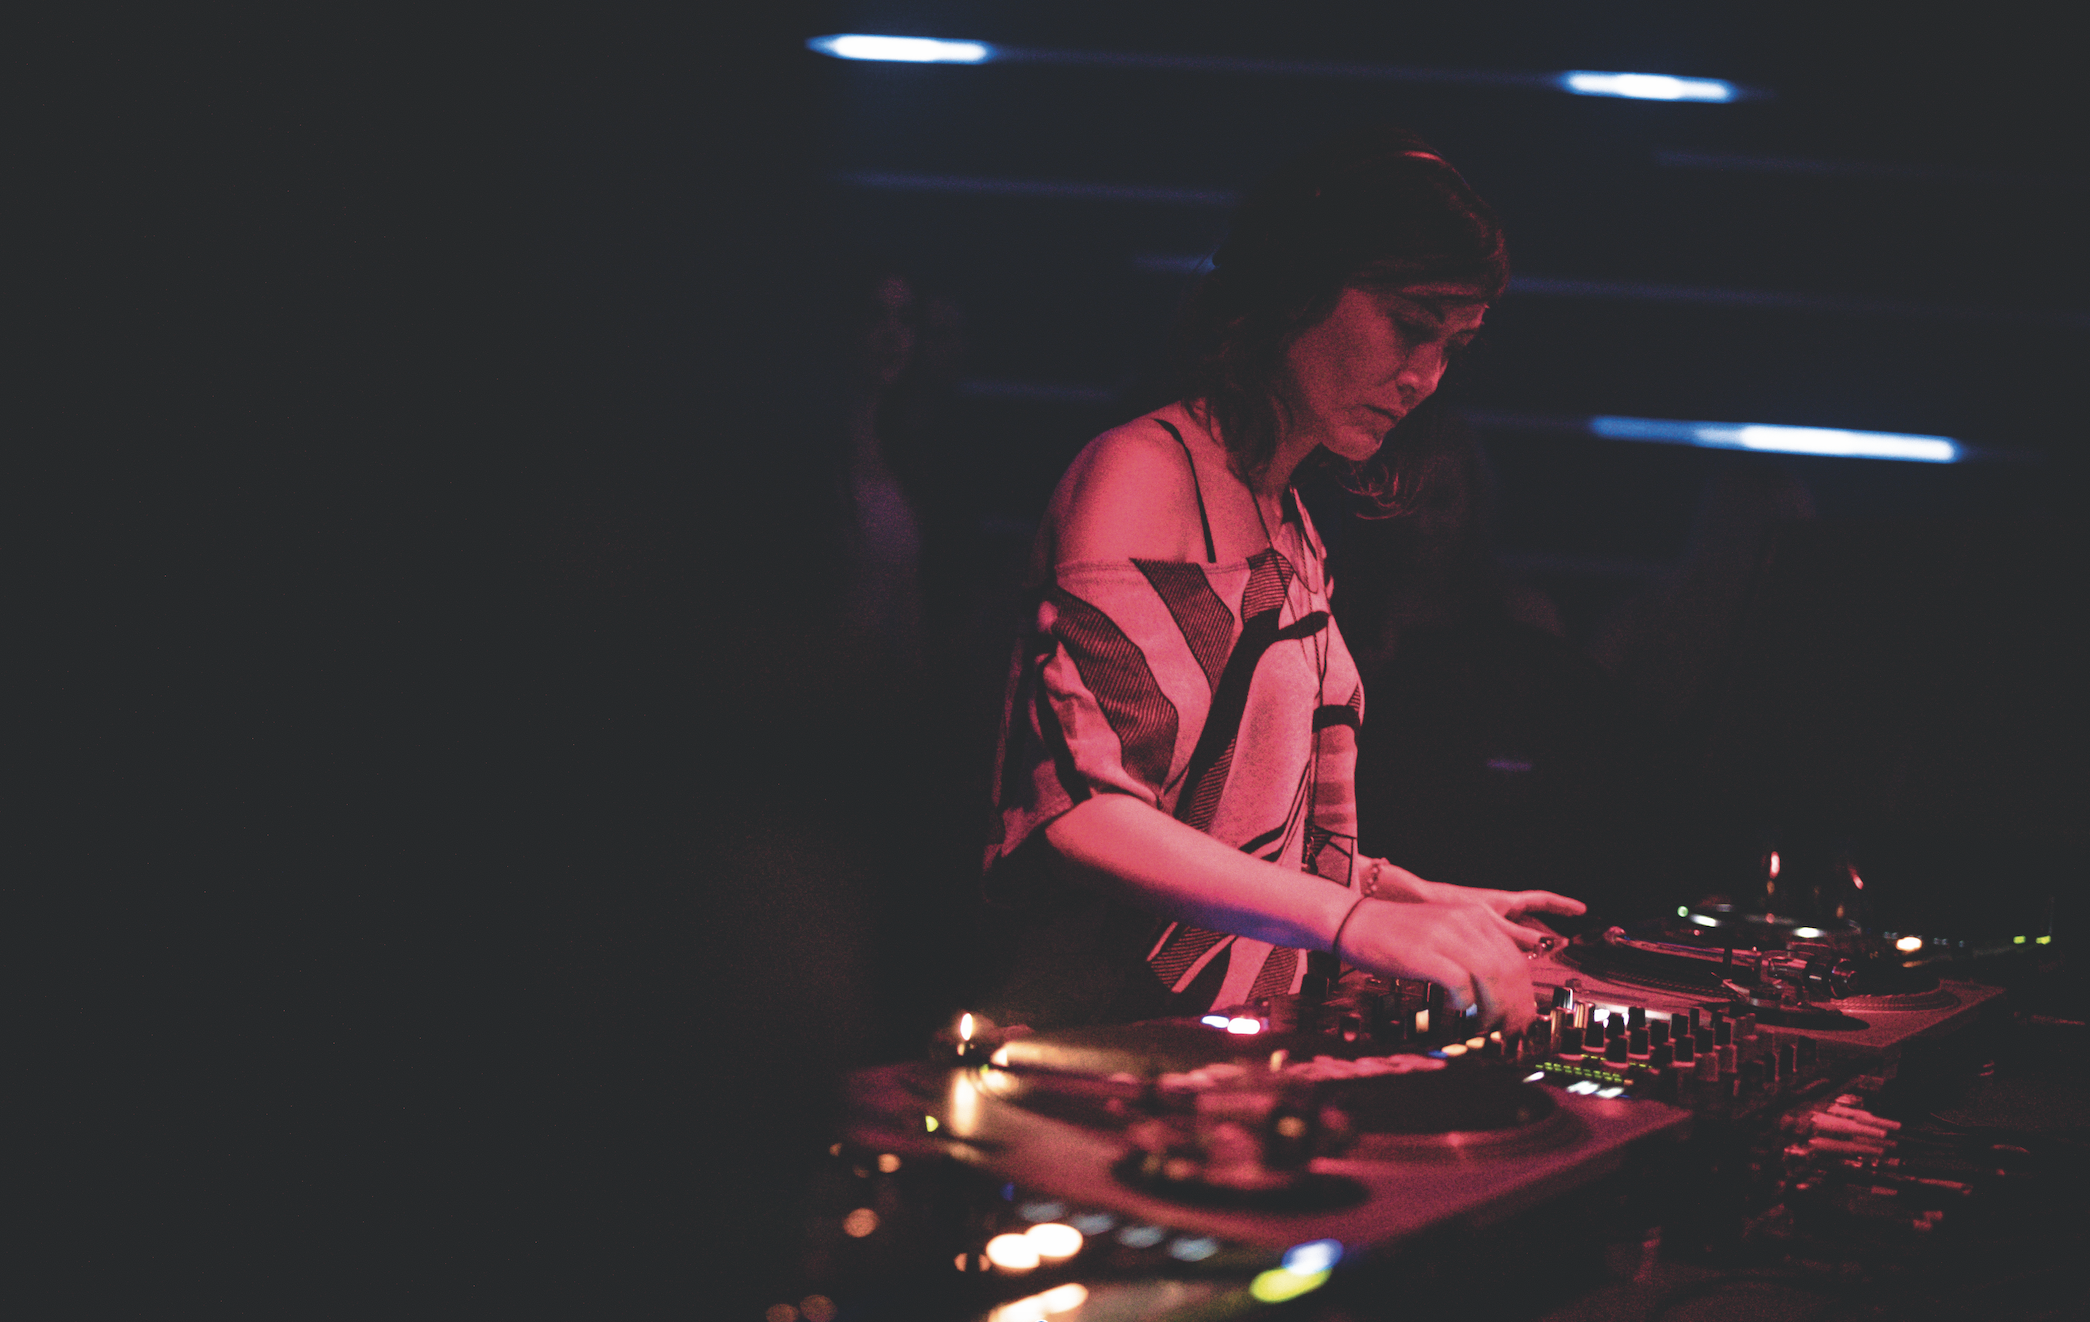 Francesca Lombardo on live performance, her debut album and deciding her own destiny